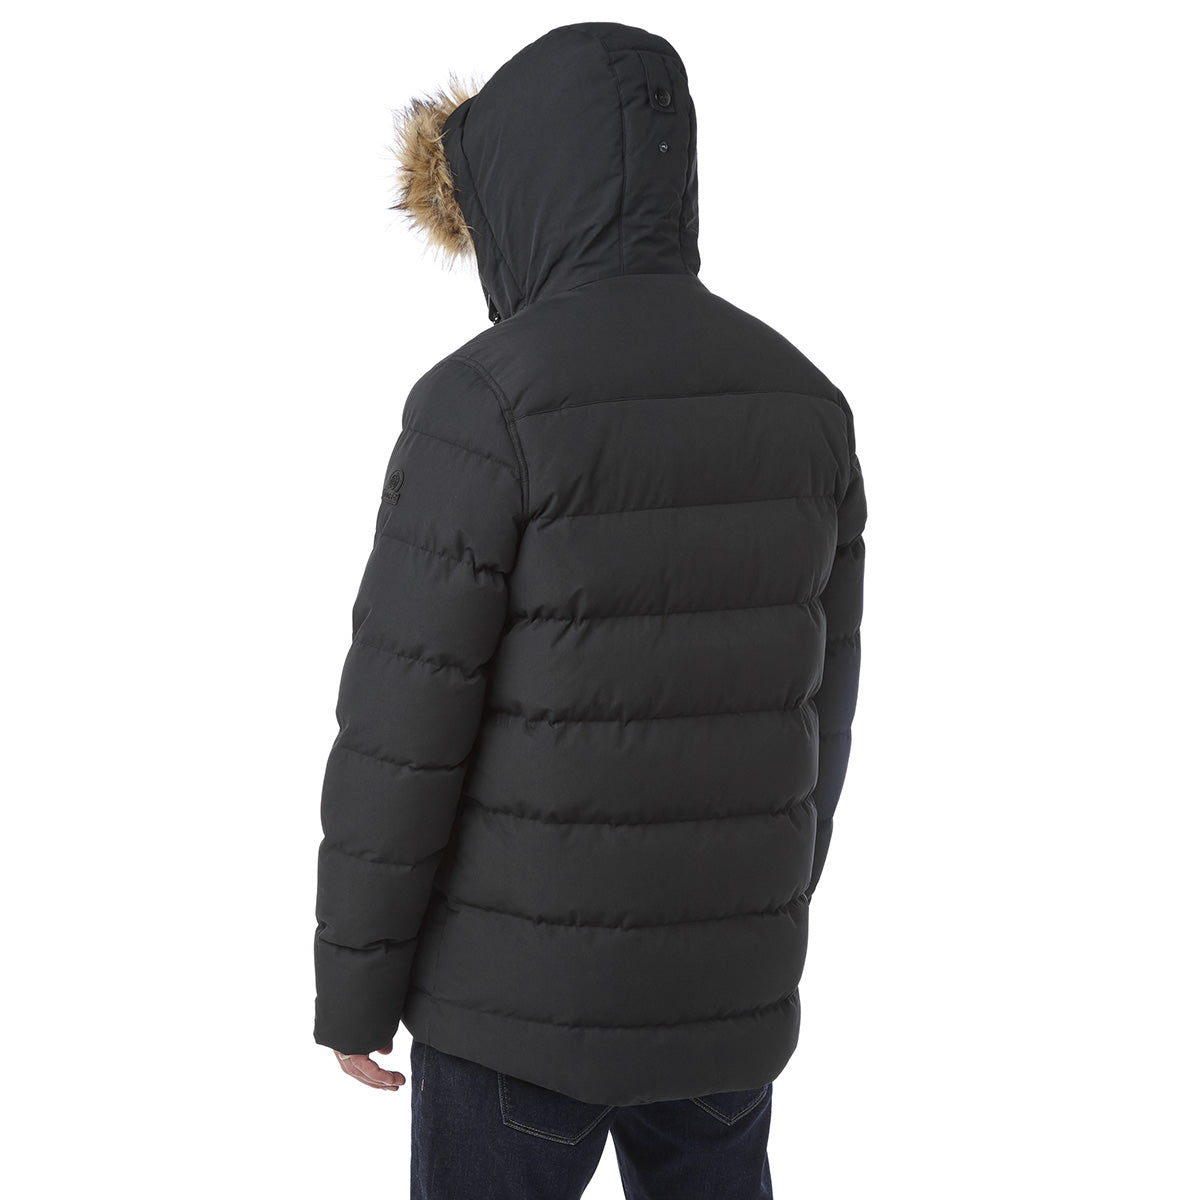 Arctic Mens Insulated Jacket - Black image 4